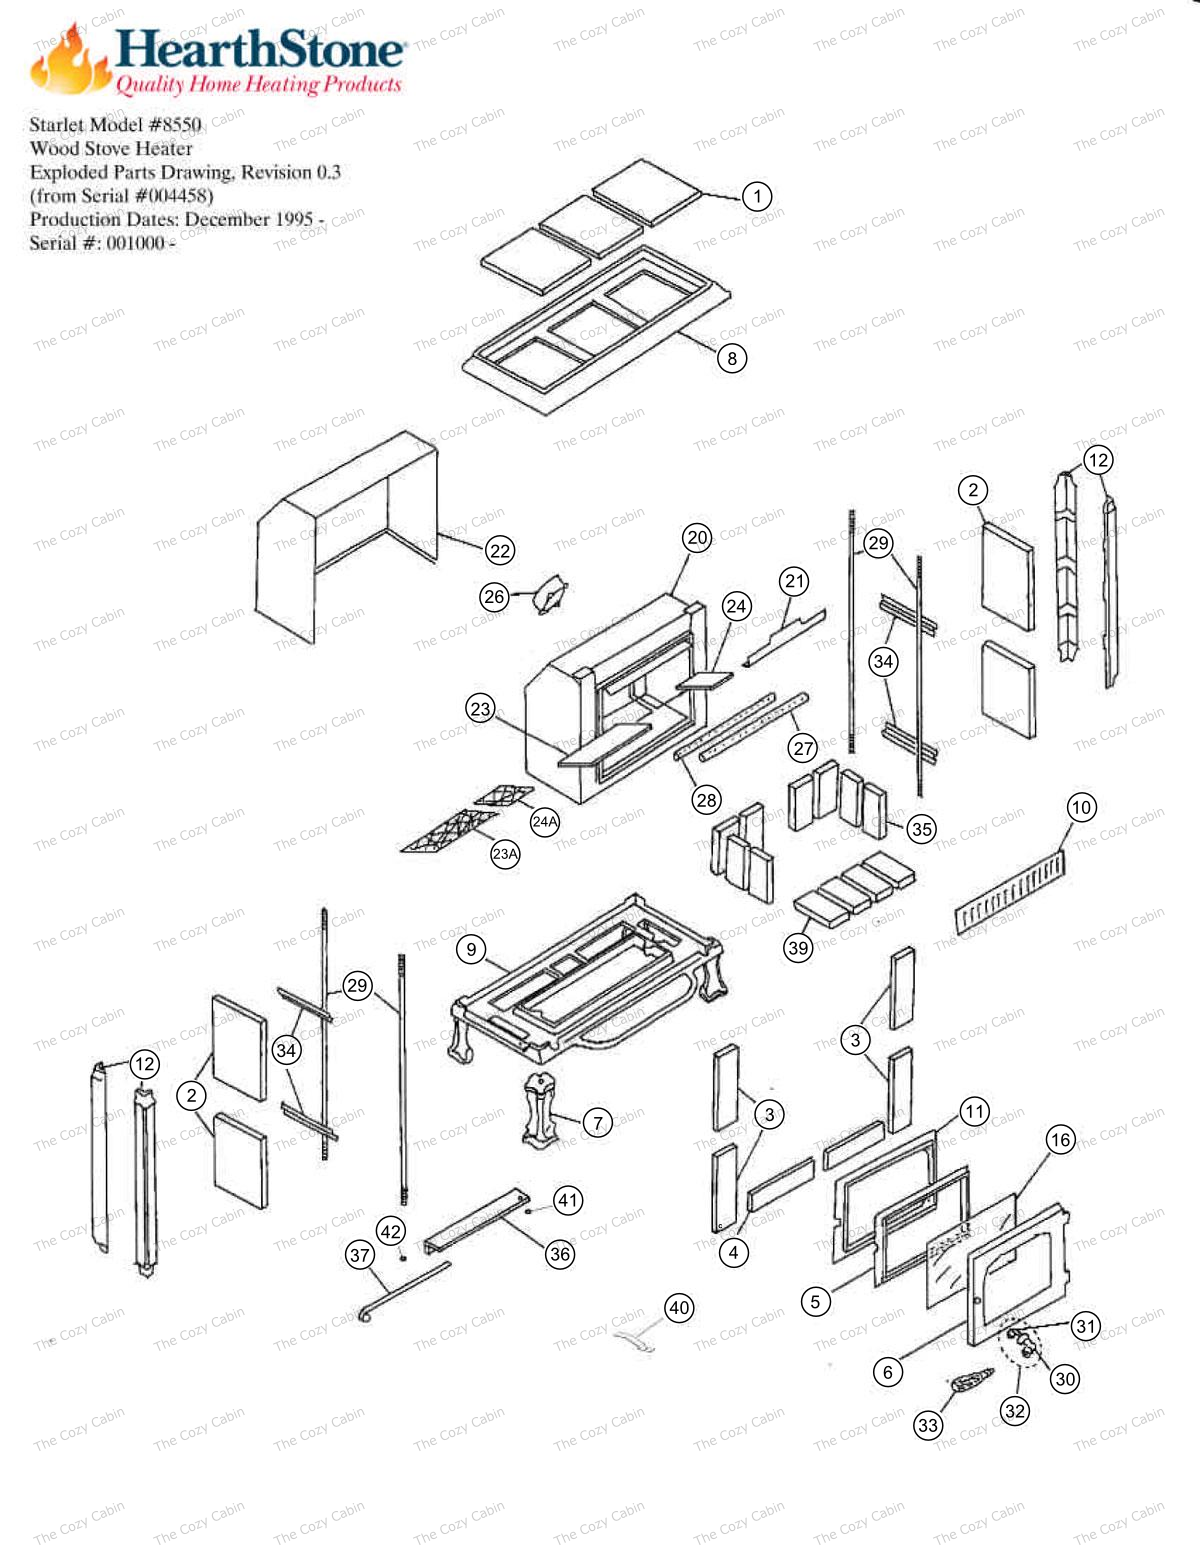 Starlet 8550 Exploded View Parts  #8550